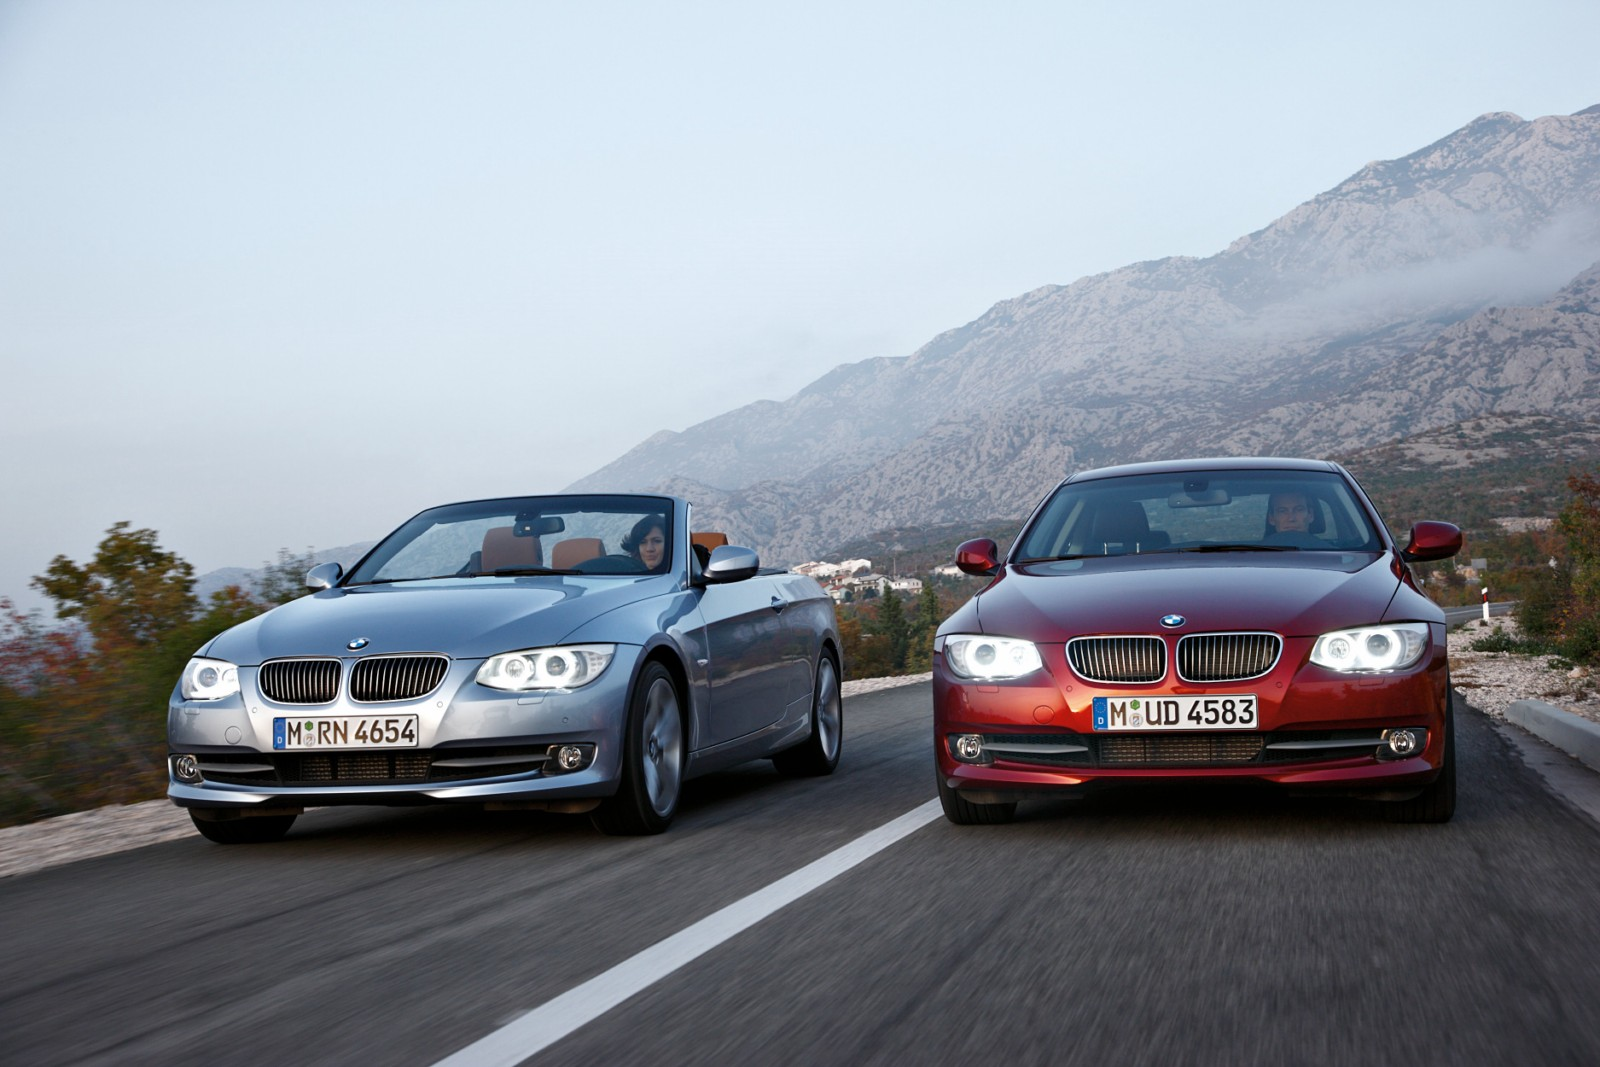 Coupe Series 2010 bmw 328 Pictures & Information] 2011 BMW 3-Series Coupe and Convertible ...